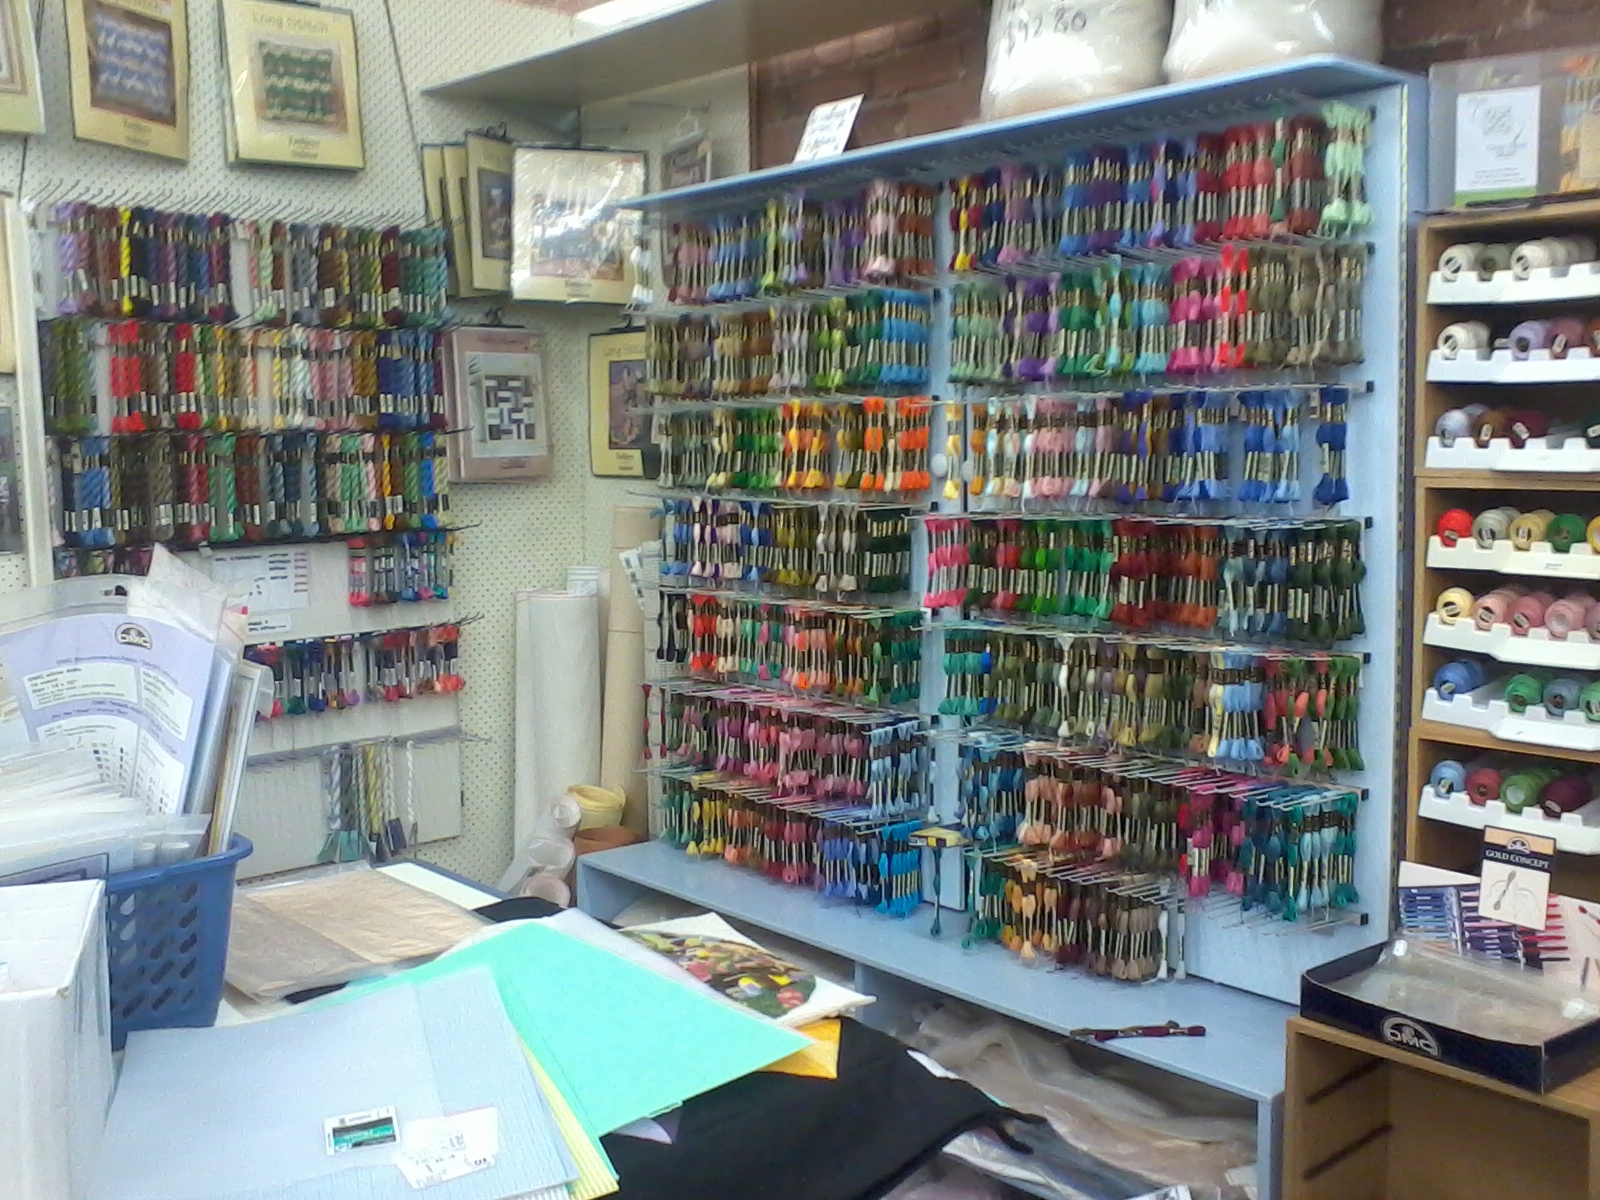 A Craft Shop Near Cuba Street Loads Of Embroidery Threads To Keep Me Happy